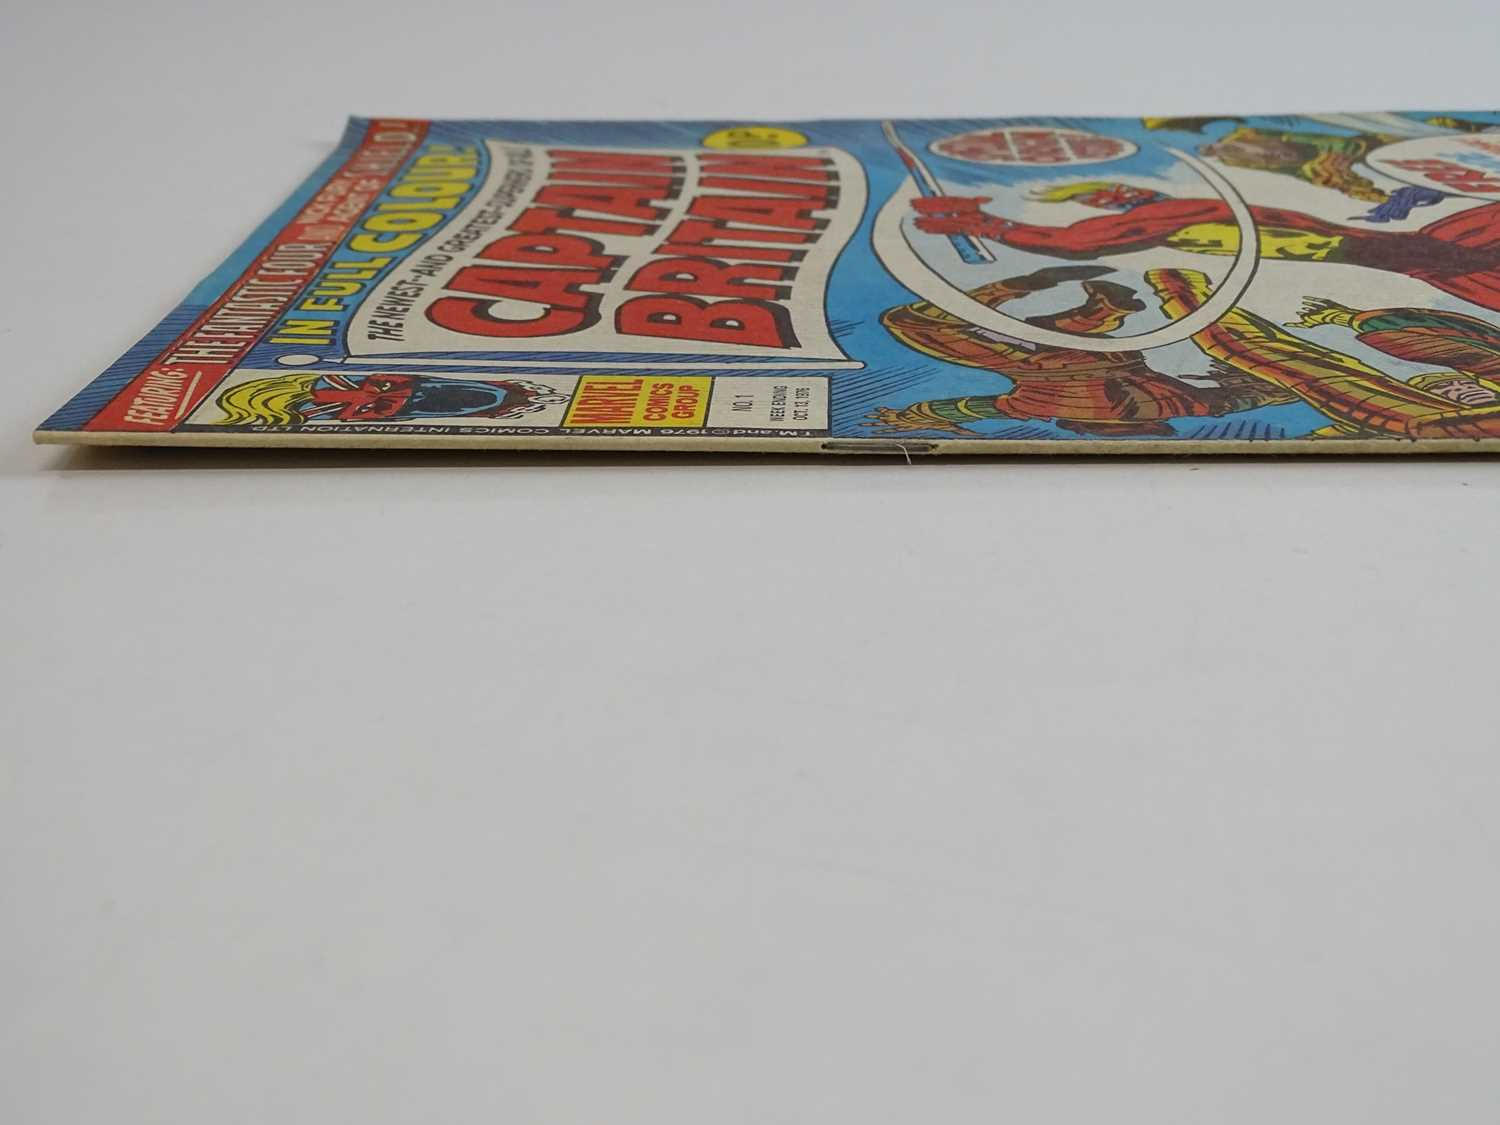 CAPTAIN BRITAIN #1 - (1976 - BRITISH MARVEL) - Origin and First appearance of Captain Britain - Image 10 of 12